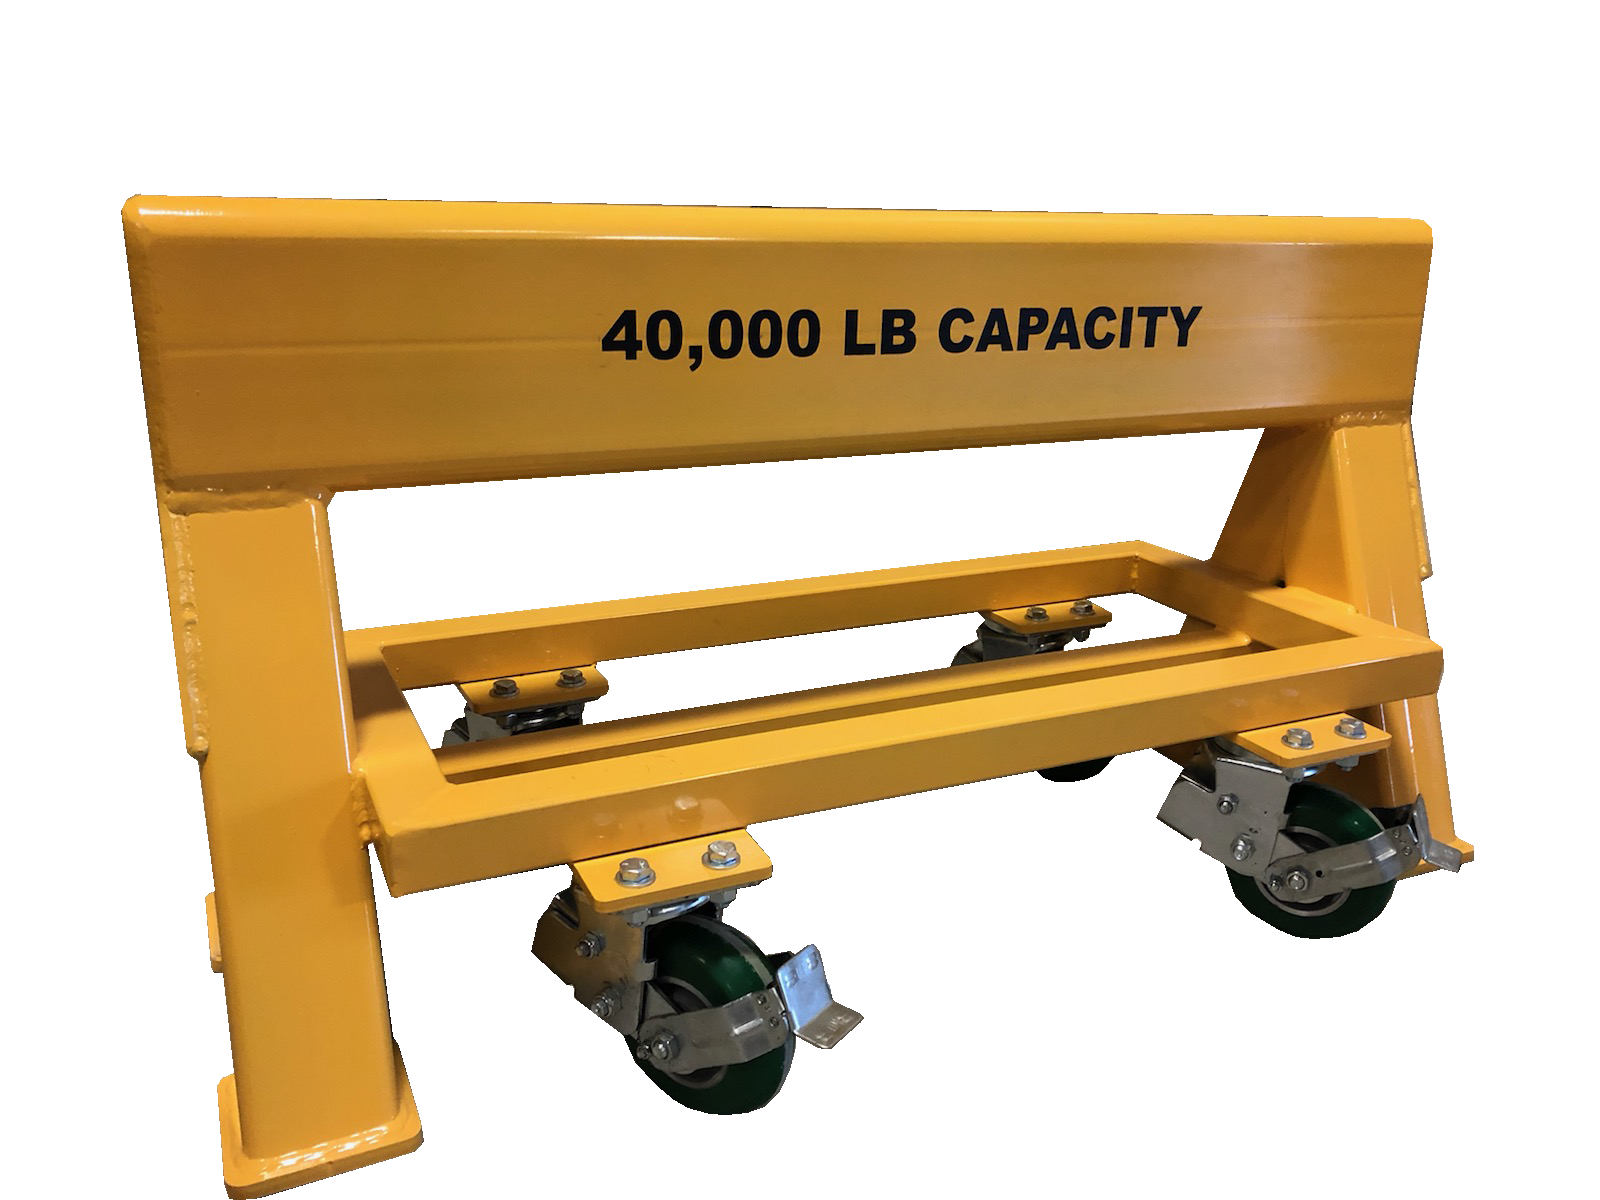 High Capacity steel sawhorse 40,000 LB. Steel Top Spring Loaded Compression Caster (184493)